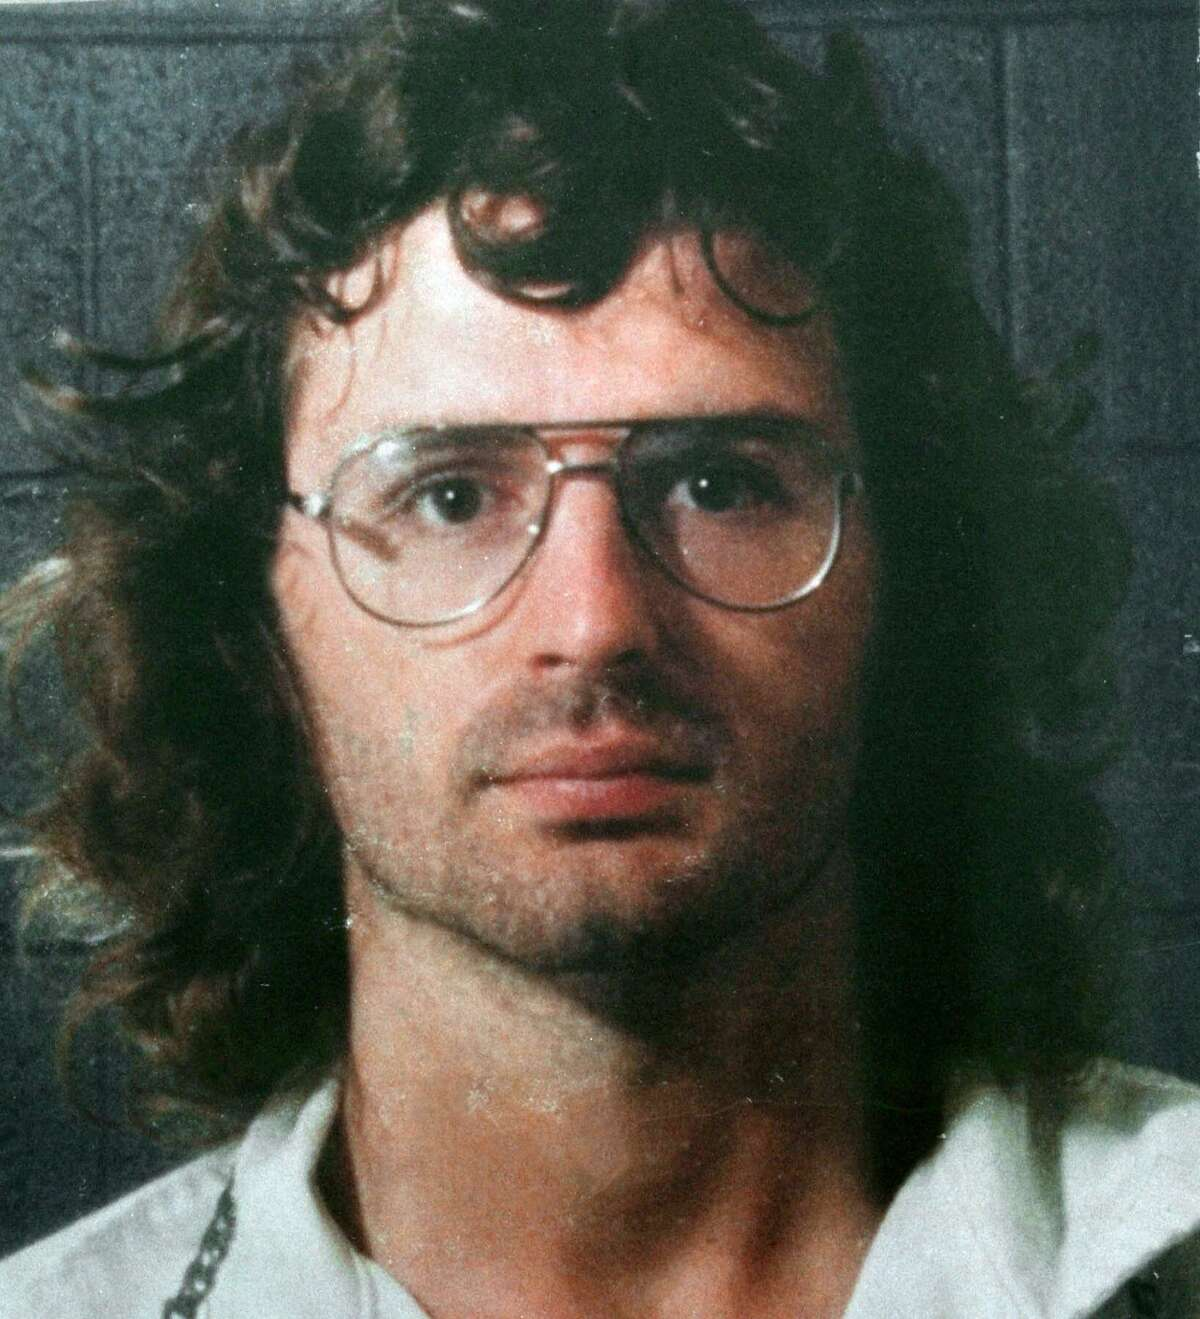 David Koresh was the leader of the Branch Davidians.